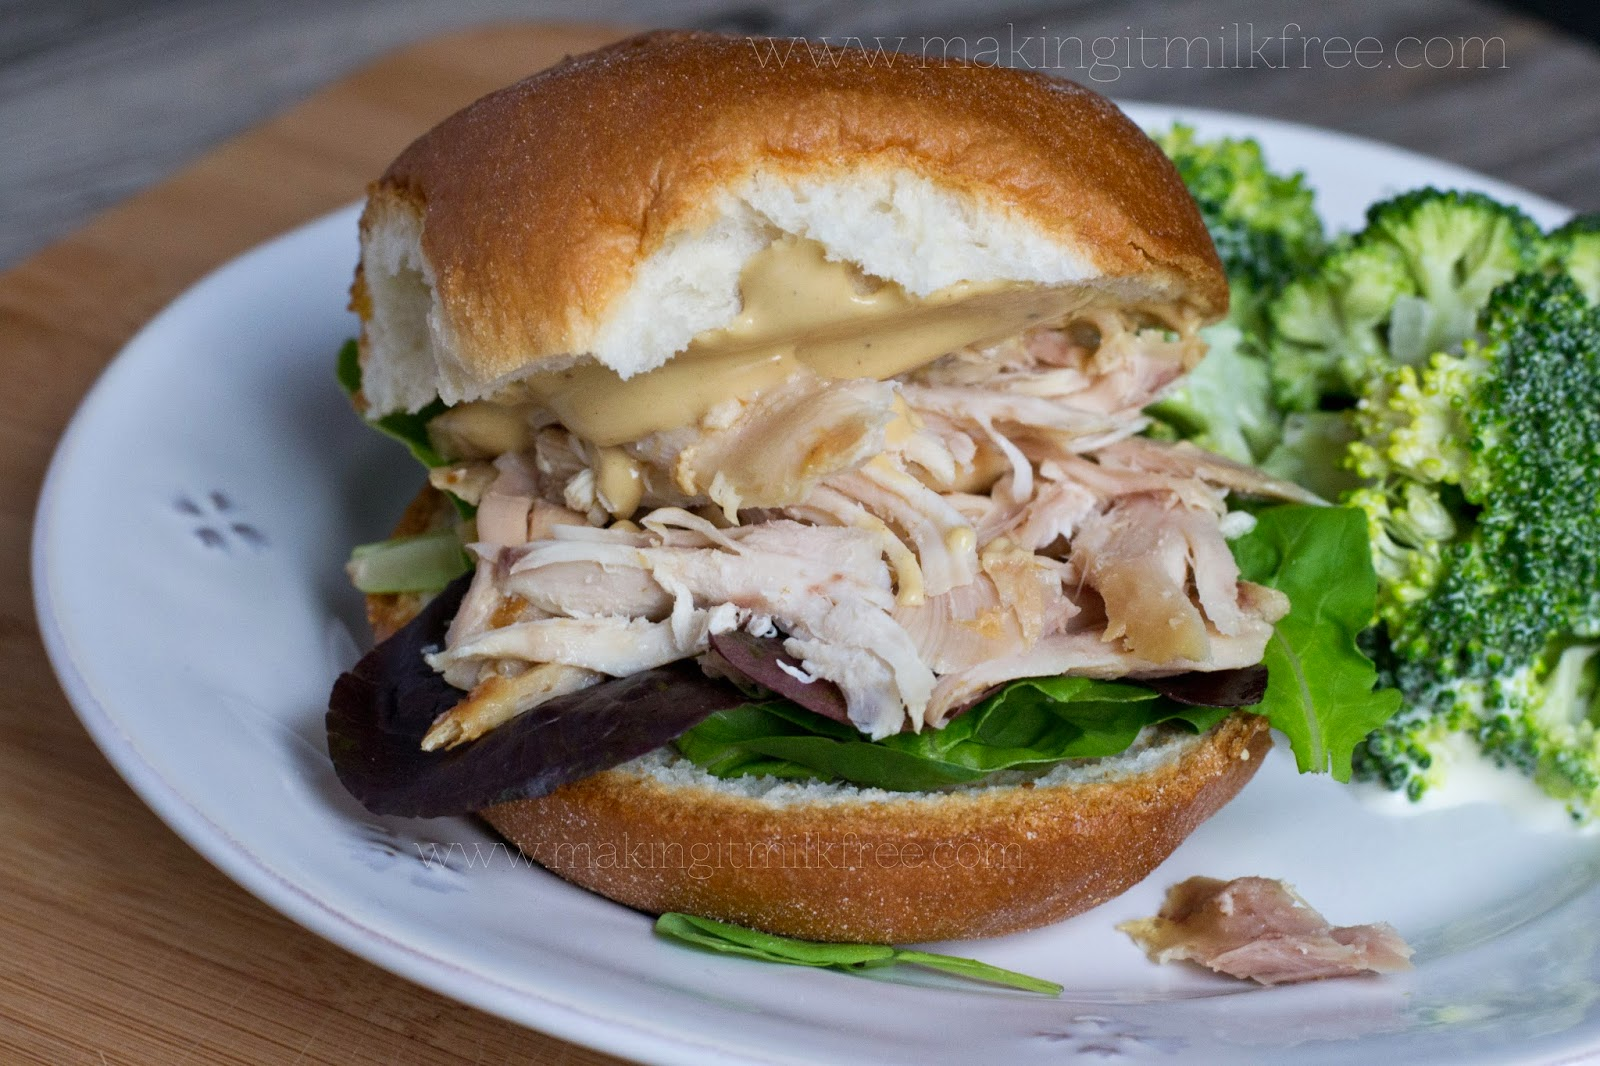 #glutenfree #dairyfree #eggfree #chicken #sandwiches